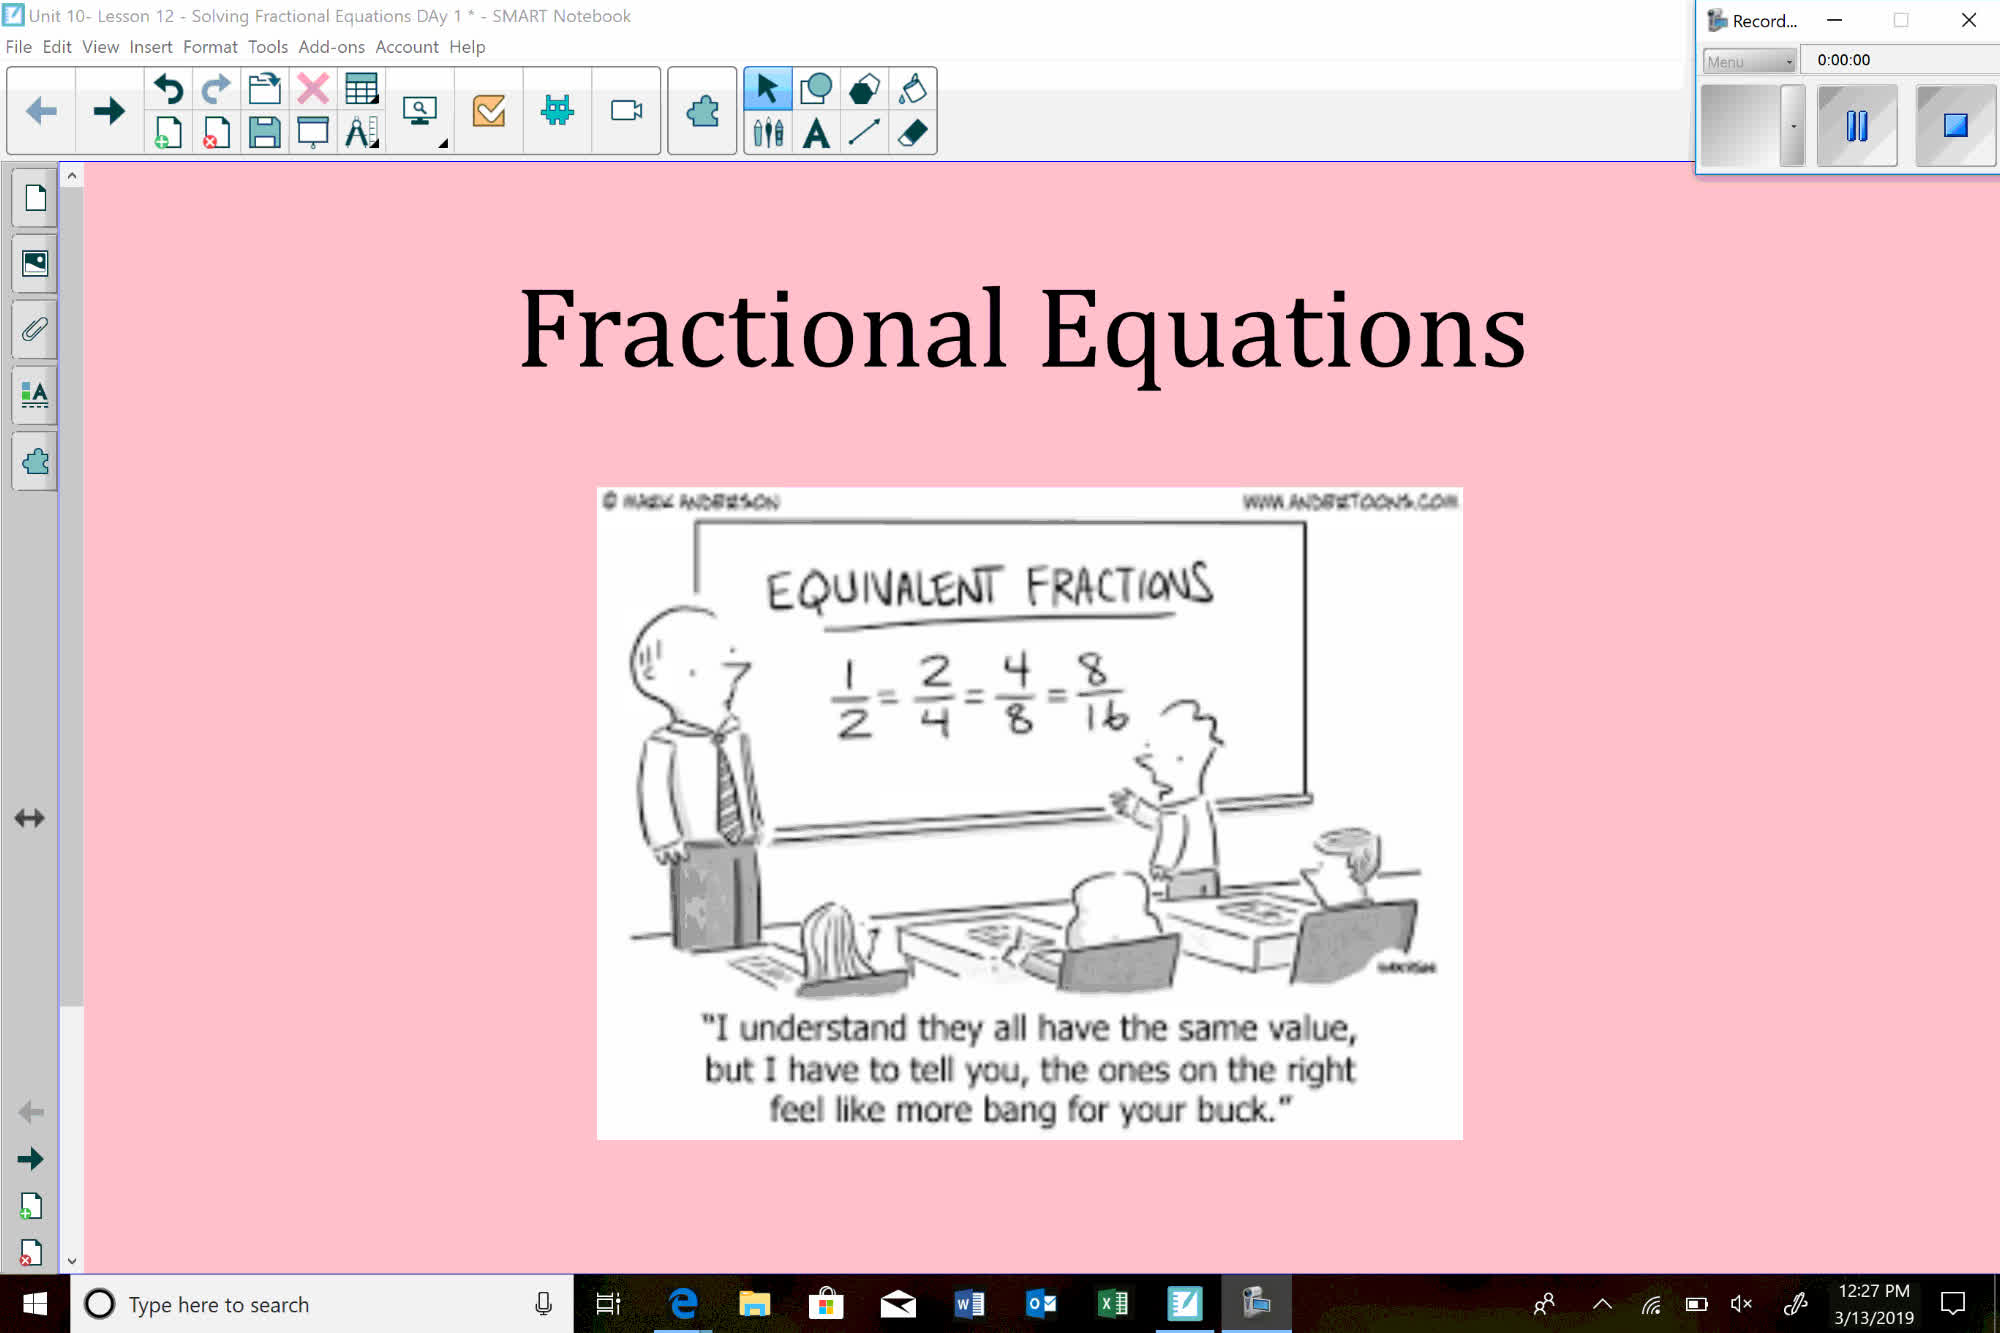 Unit 10 - Lesson 12 - Solving Fractional Equations